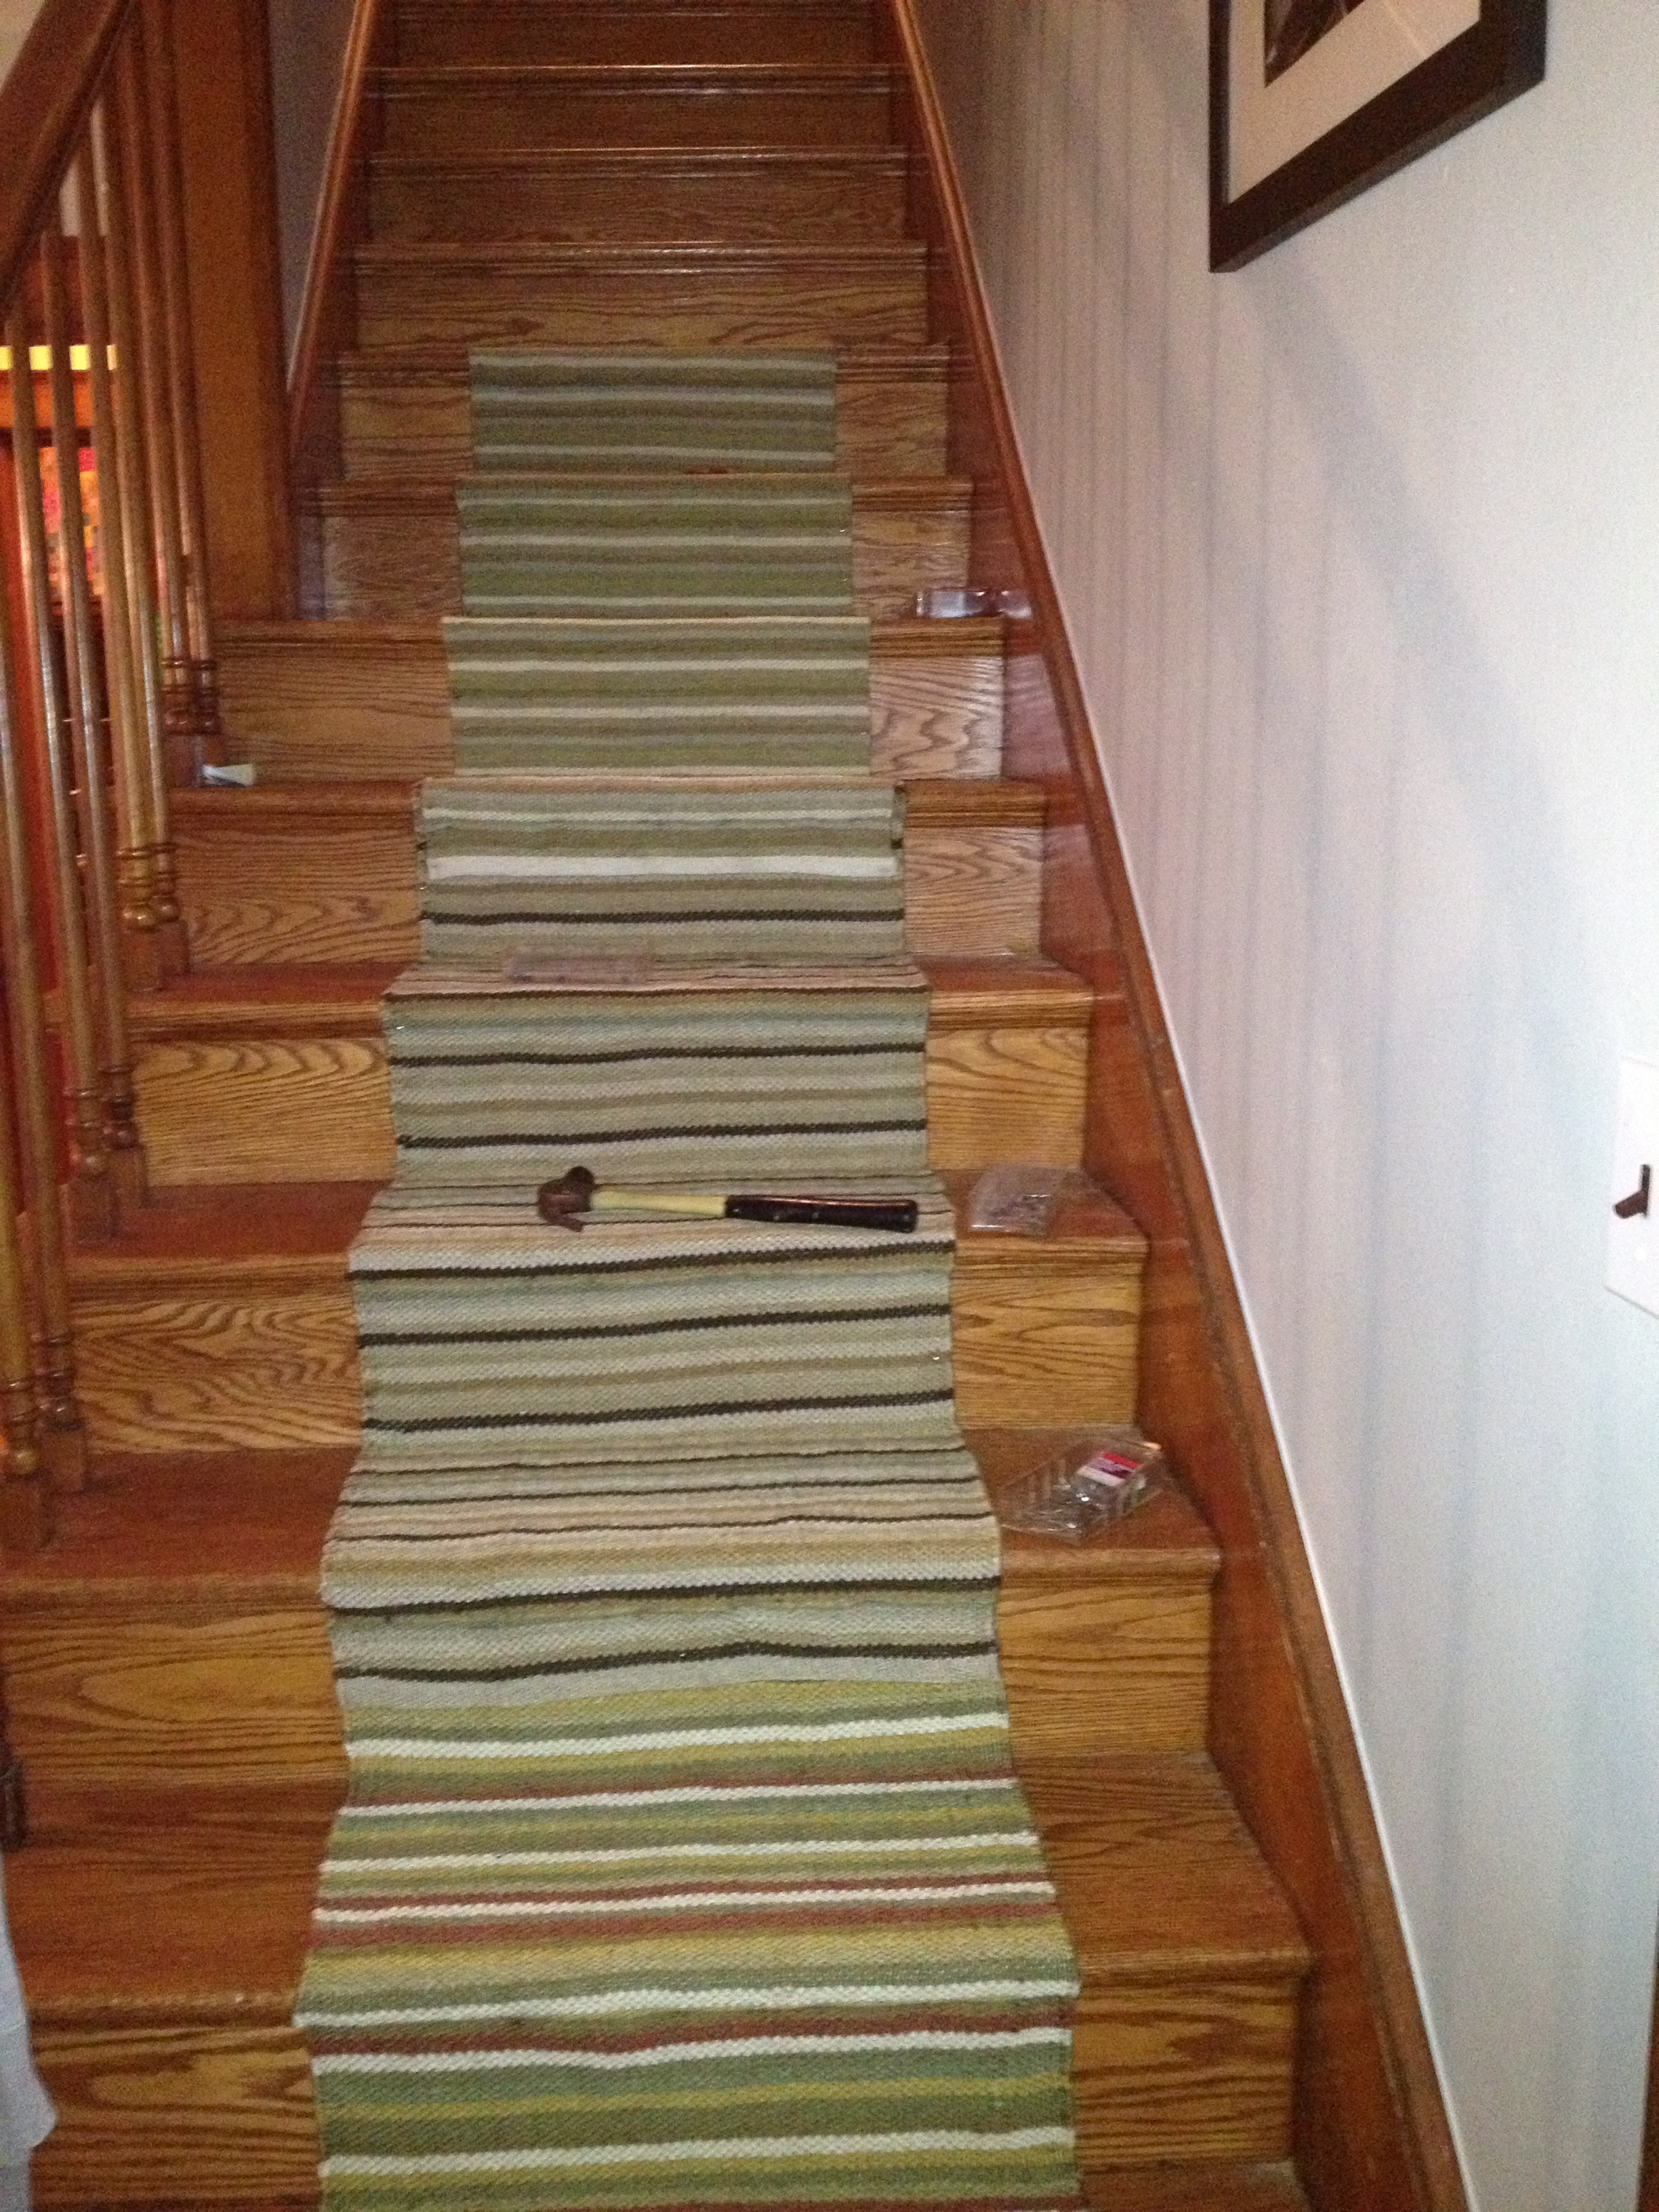 How To Install A Stair Runner | Simply Turquoise